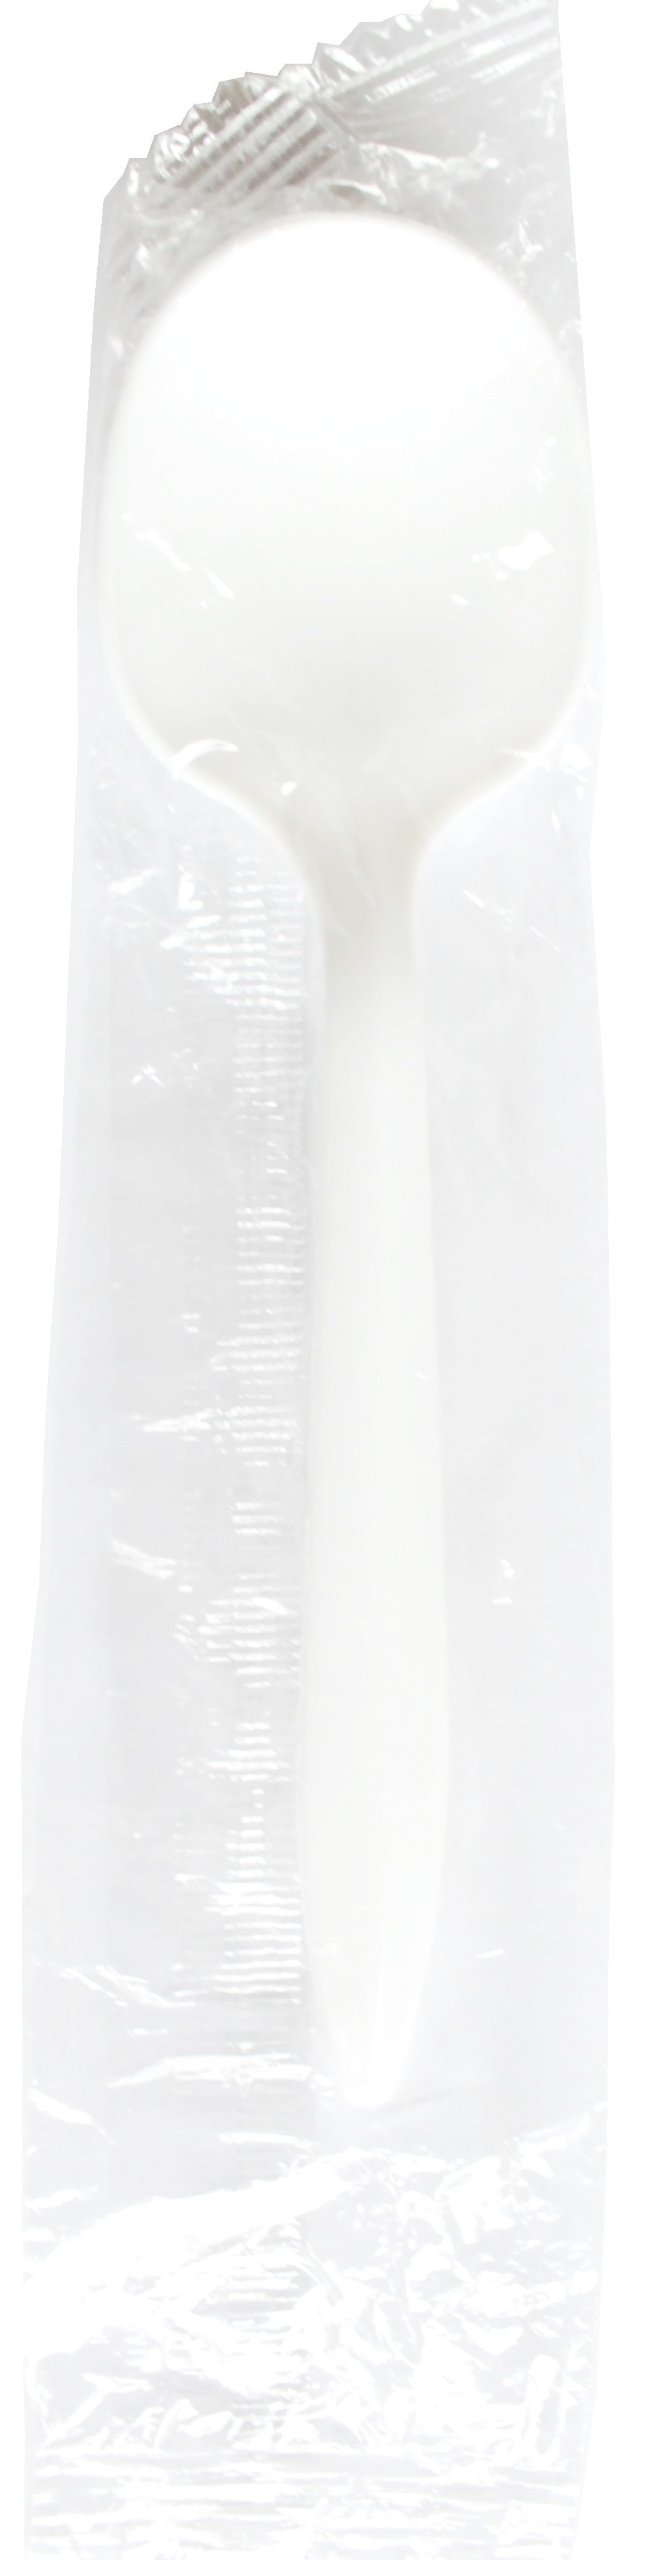 Daxwell Medium Weight Polypropylene 5 5/8'' Soup Spoon, Individually Wrapped, White, Recyclable (Box of 250)